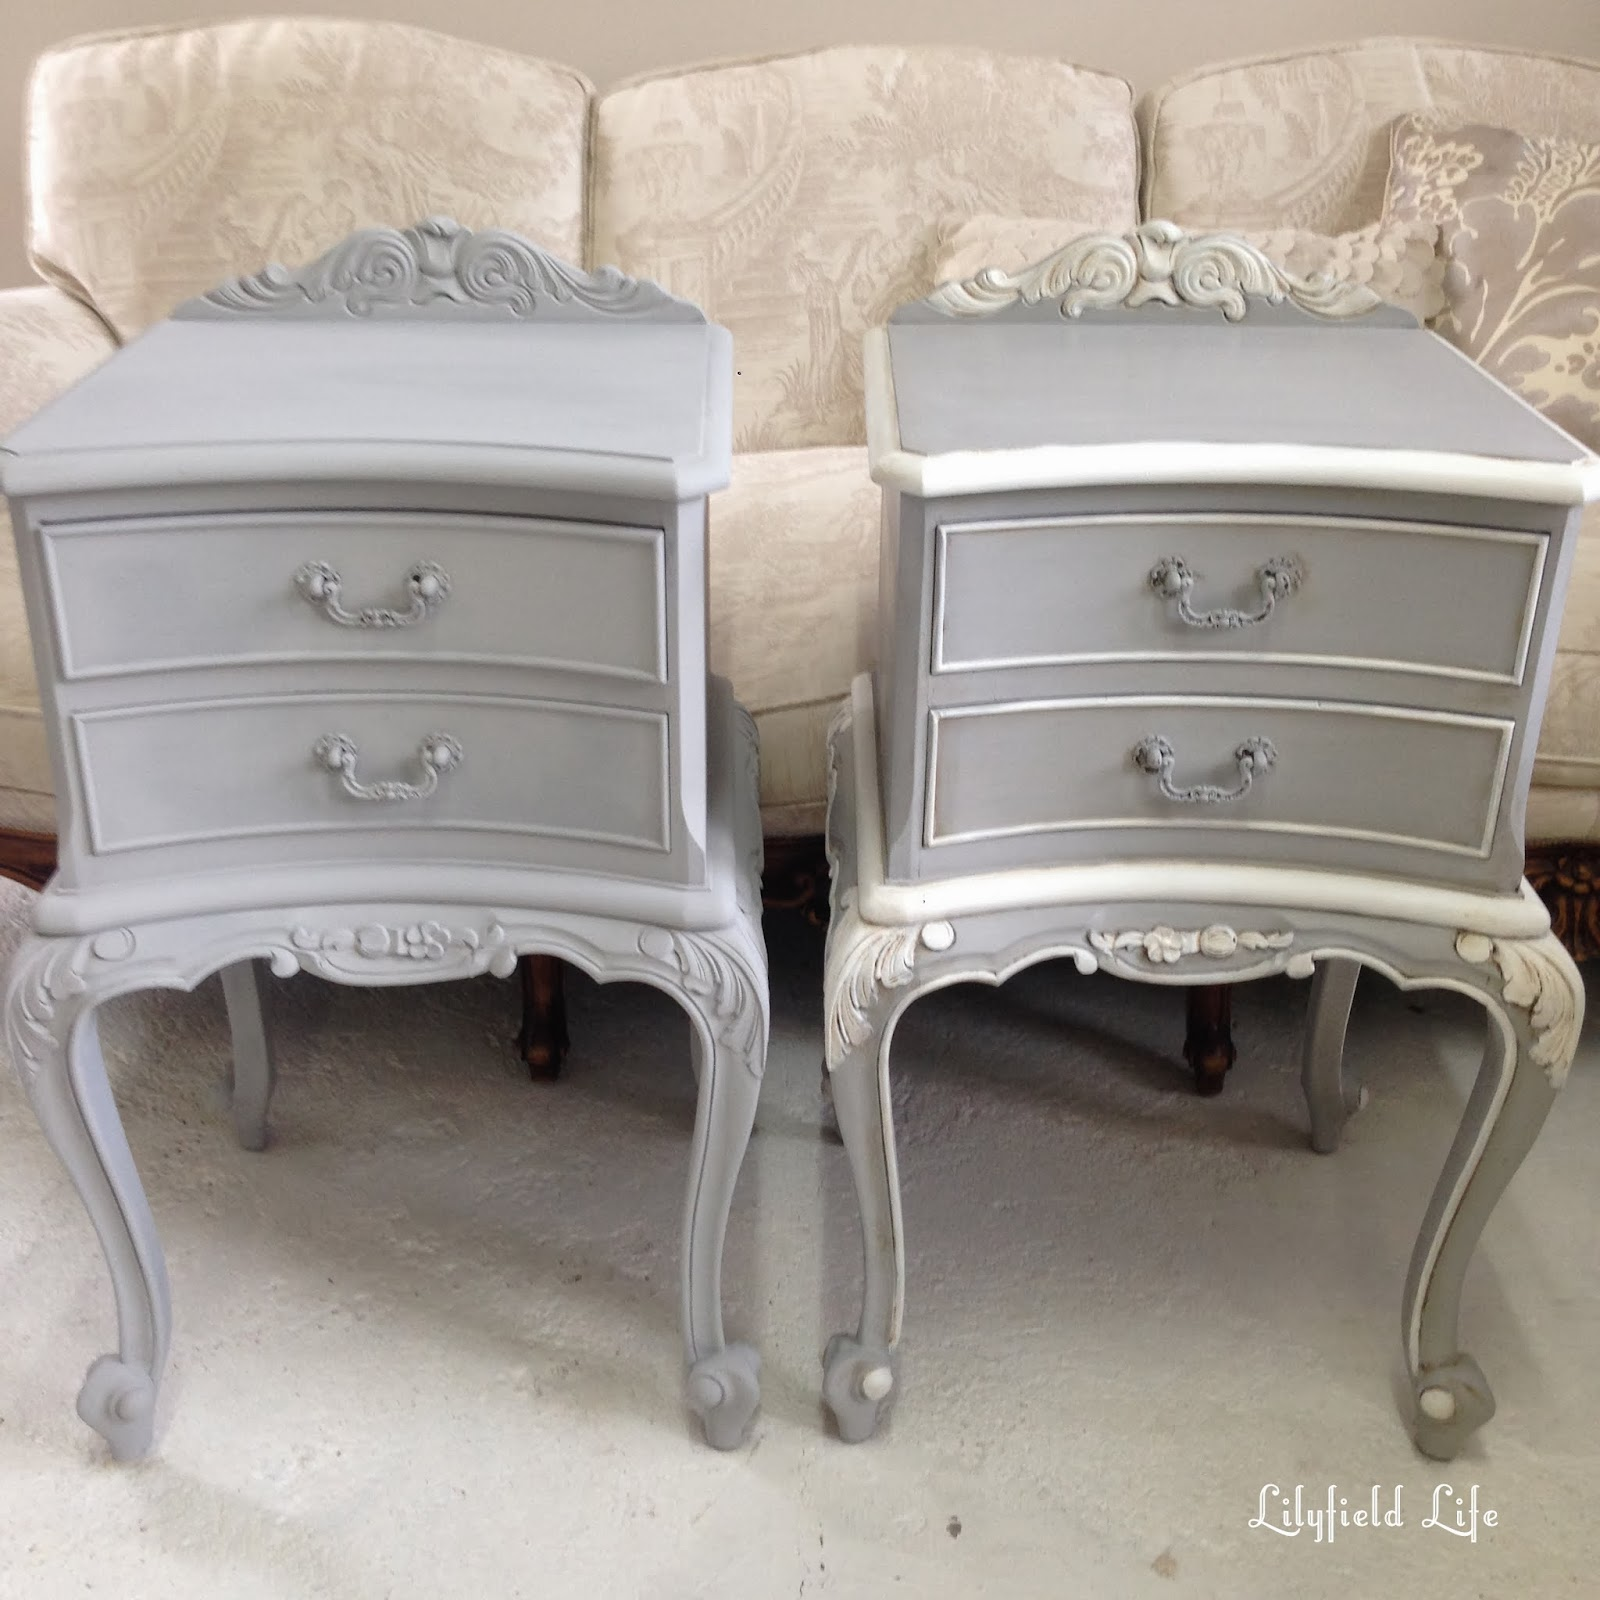 Lilyfield life painted furniture projects Images of painted furniture